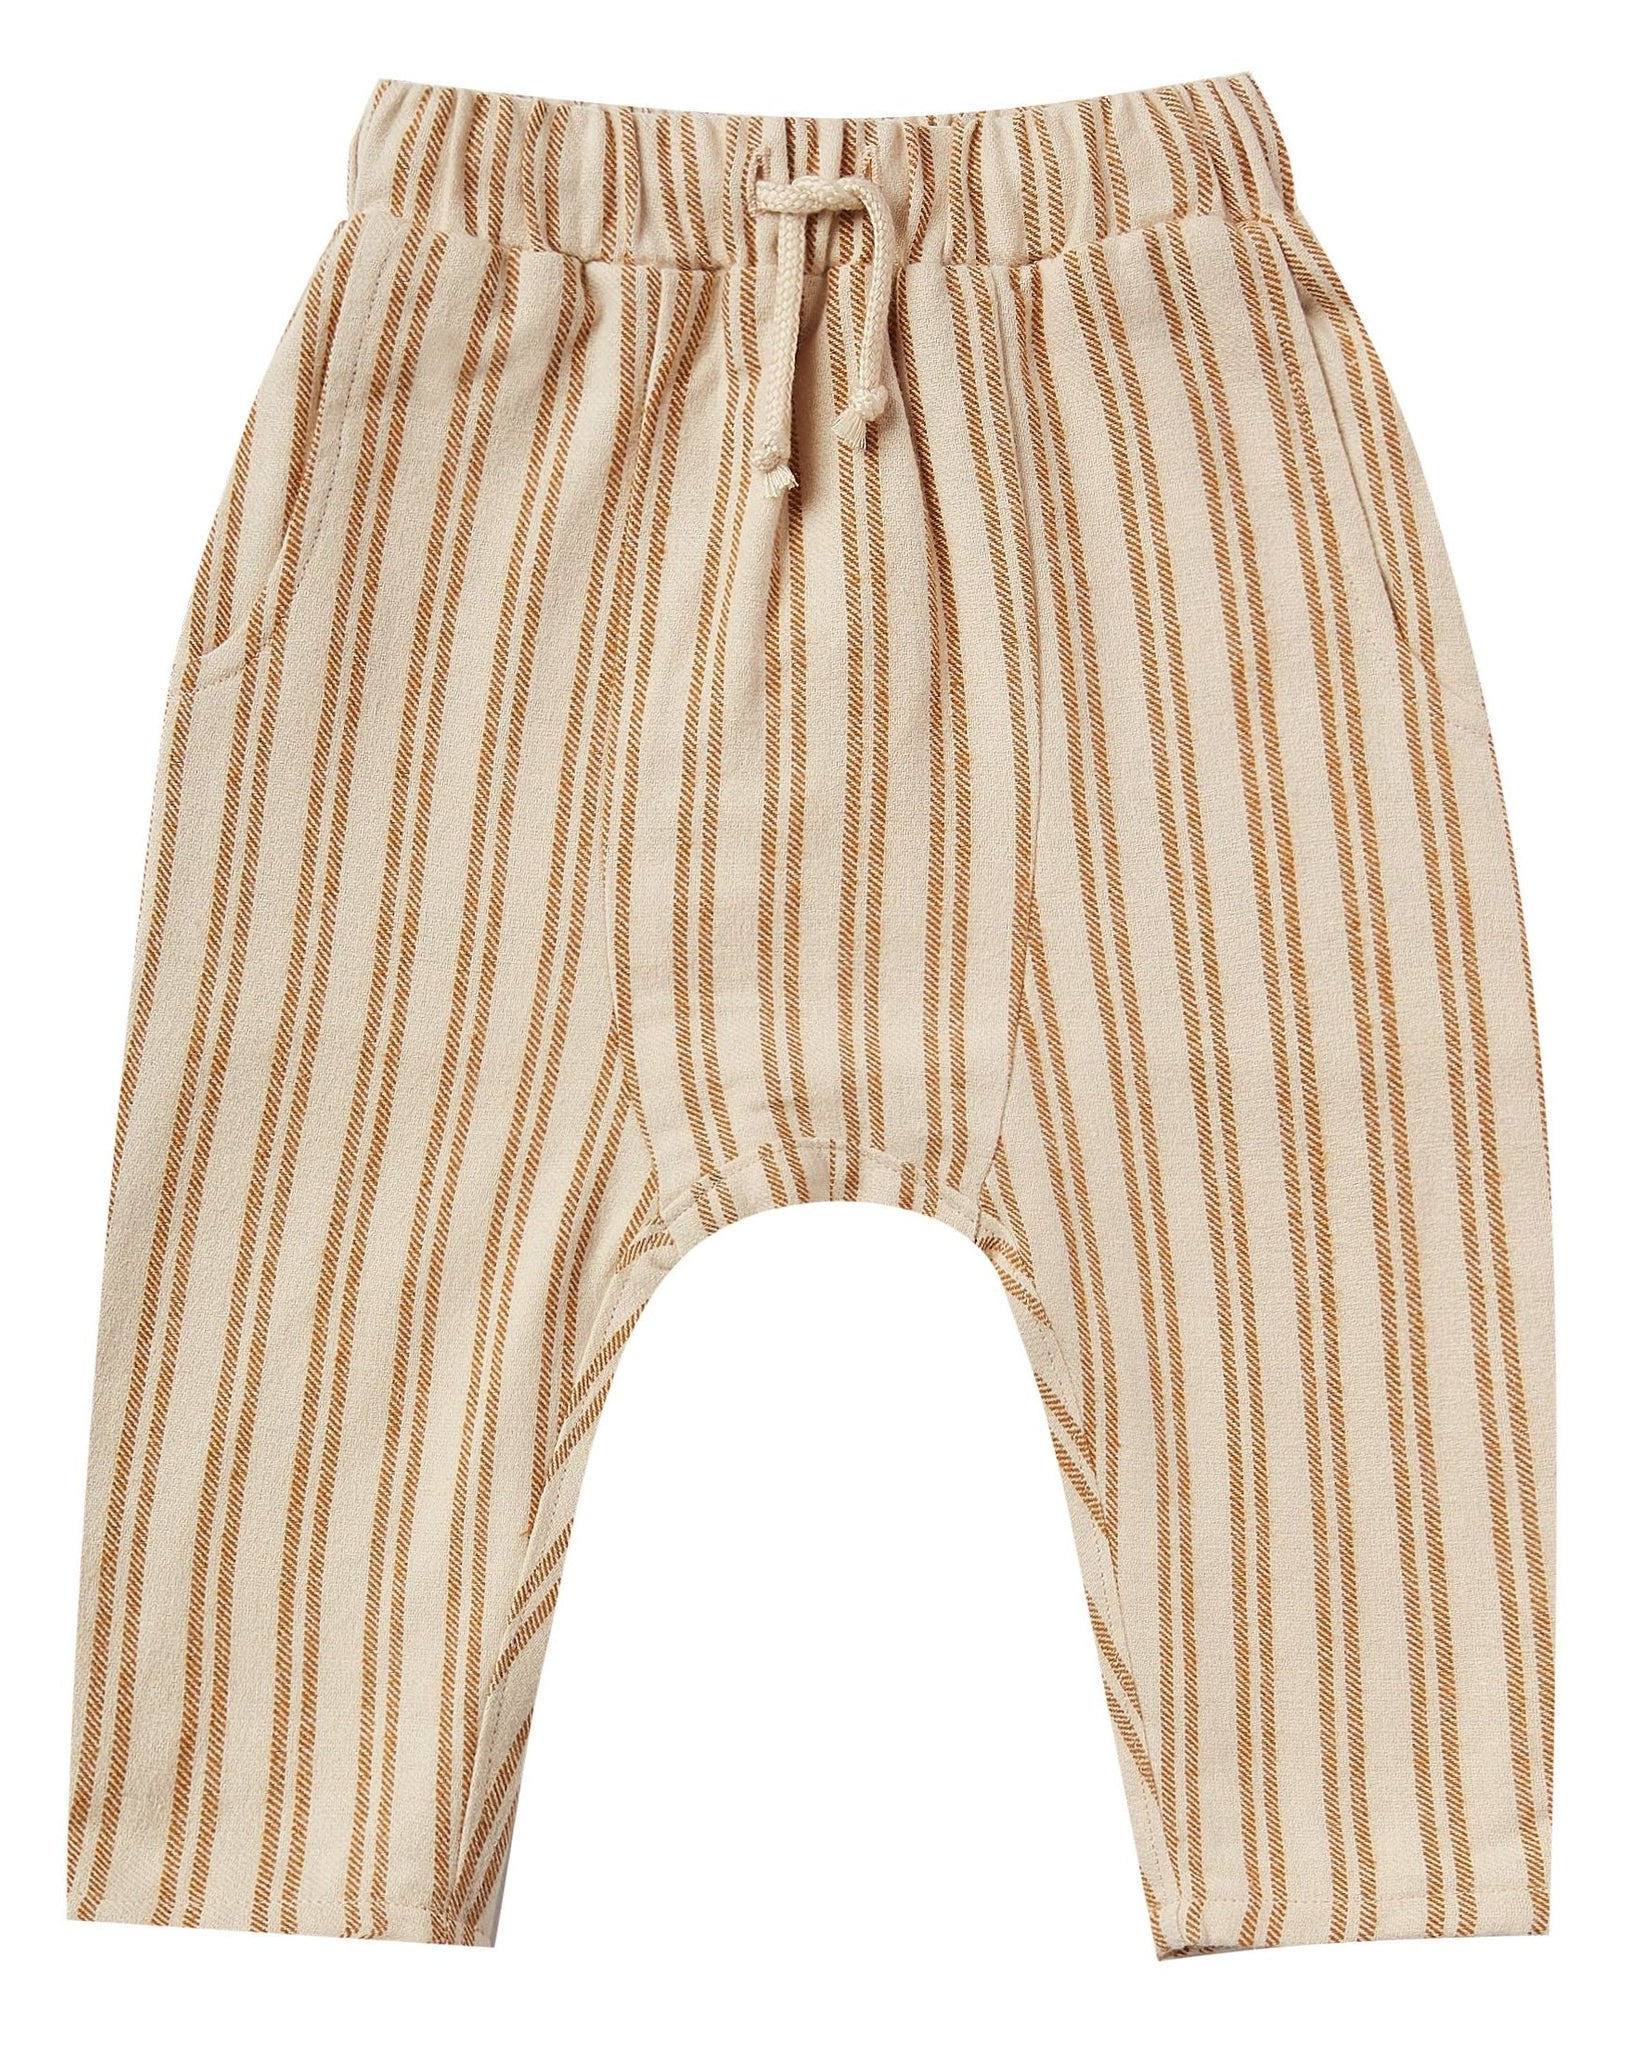 Striped Hawthorne Trouser - Last One 12-18M